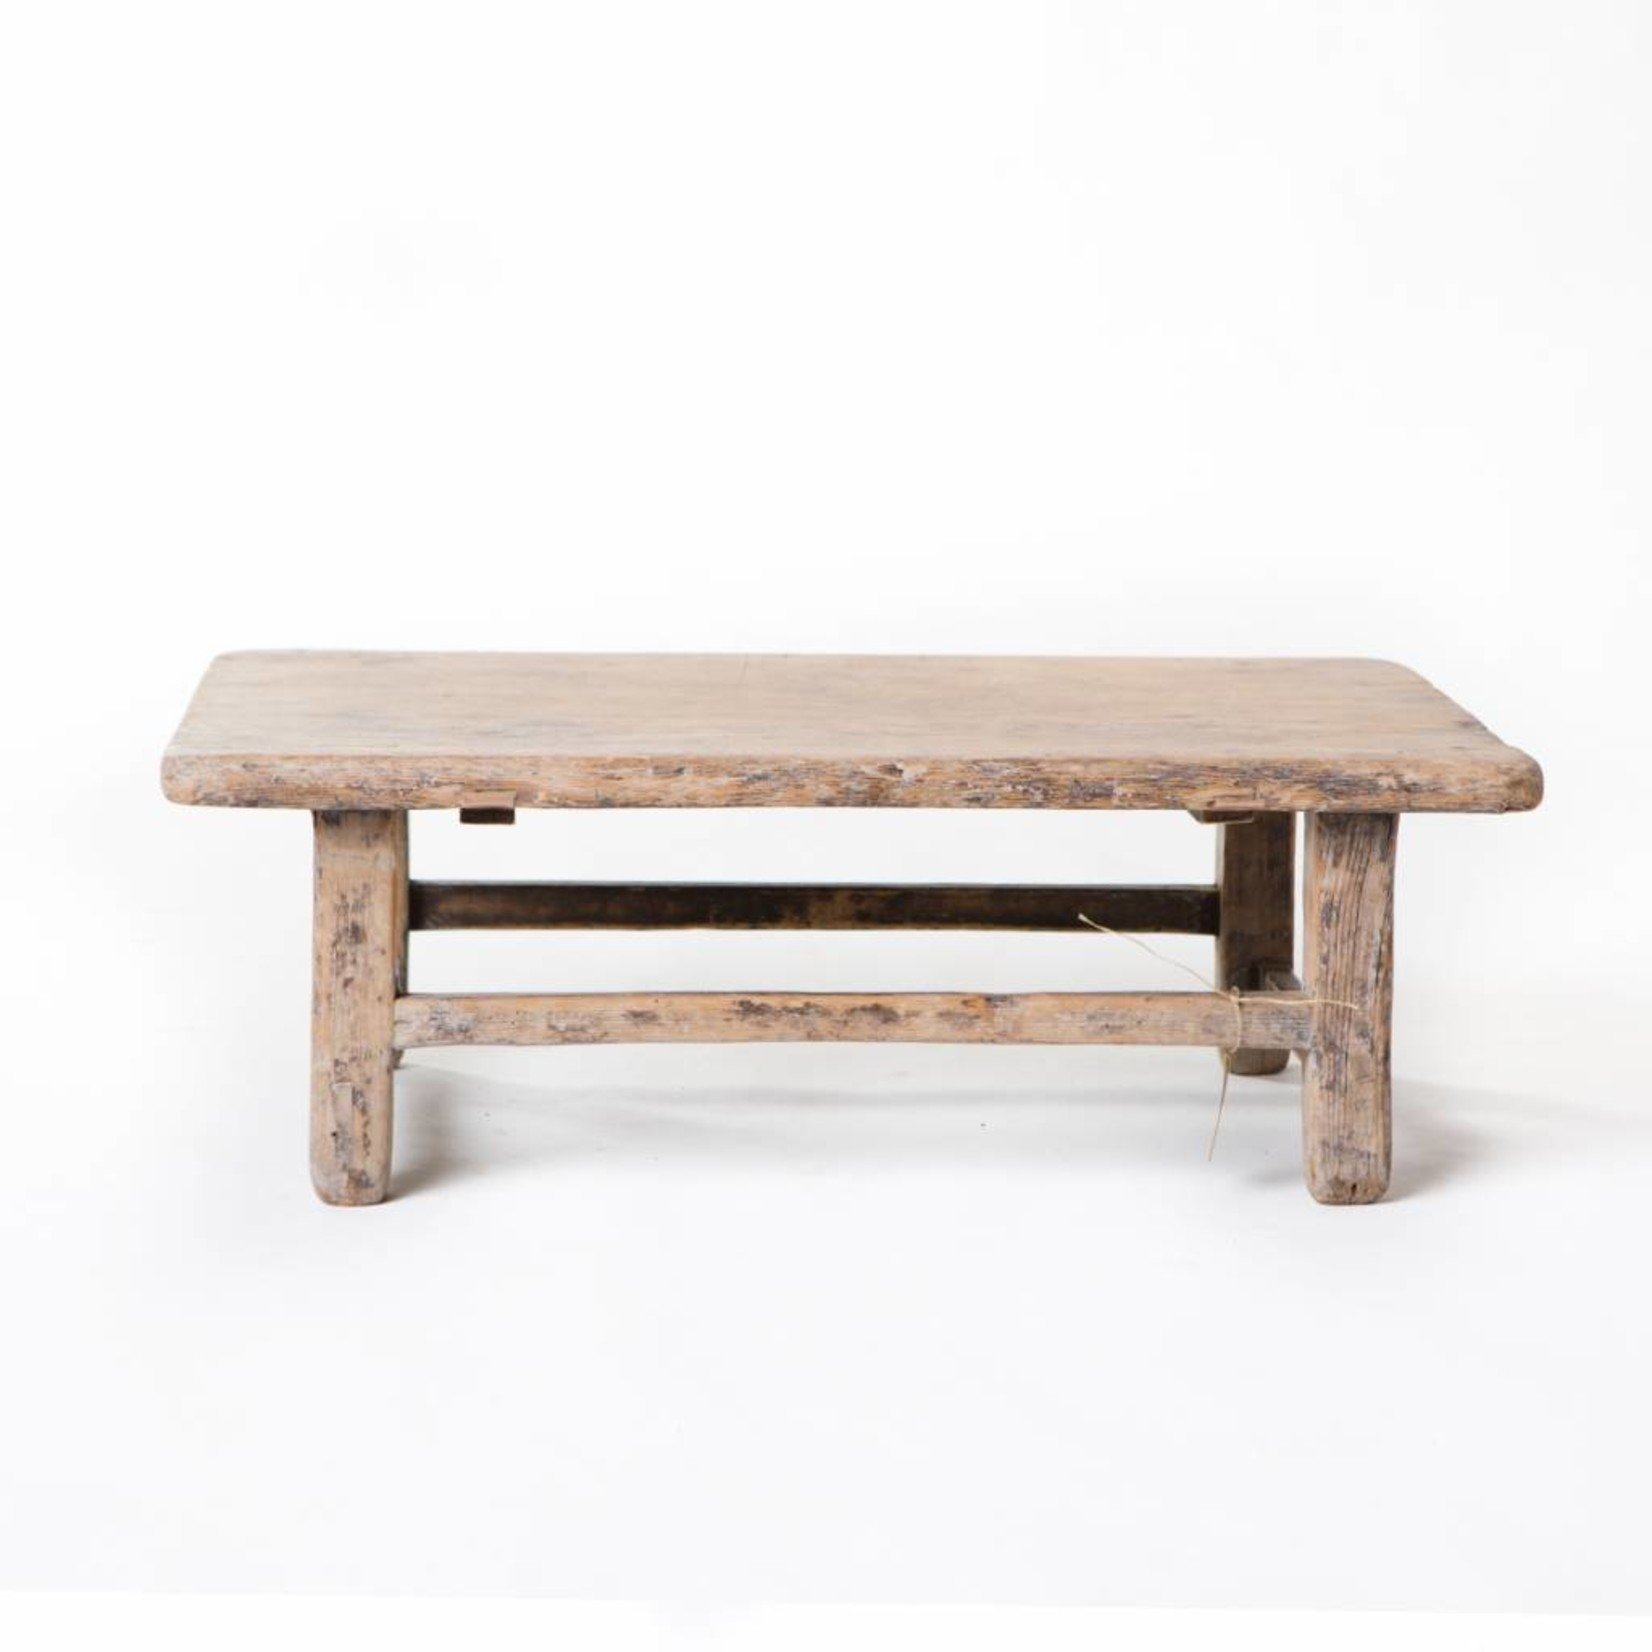 Old rustic Chinese side table